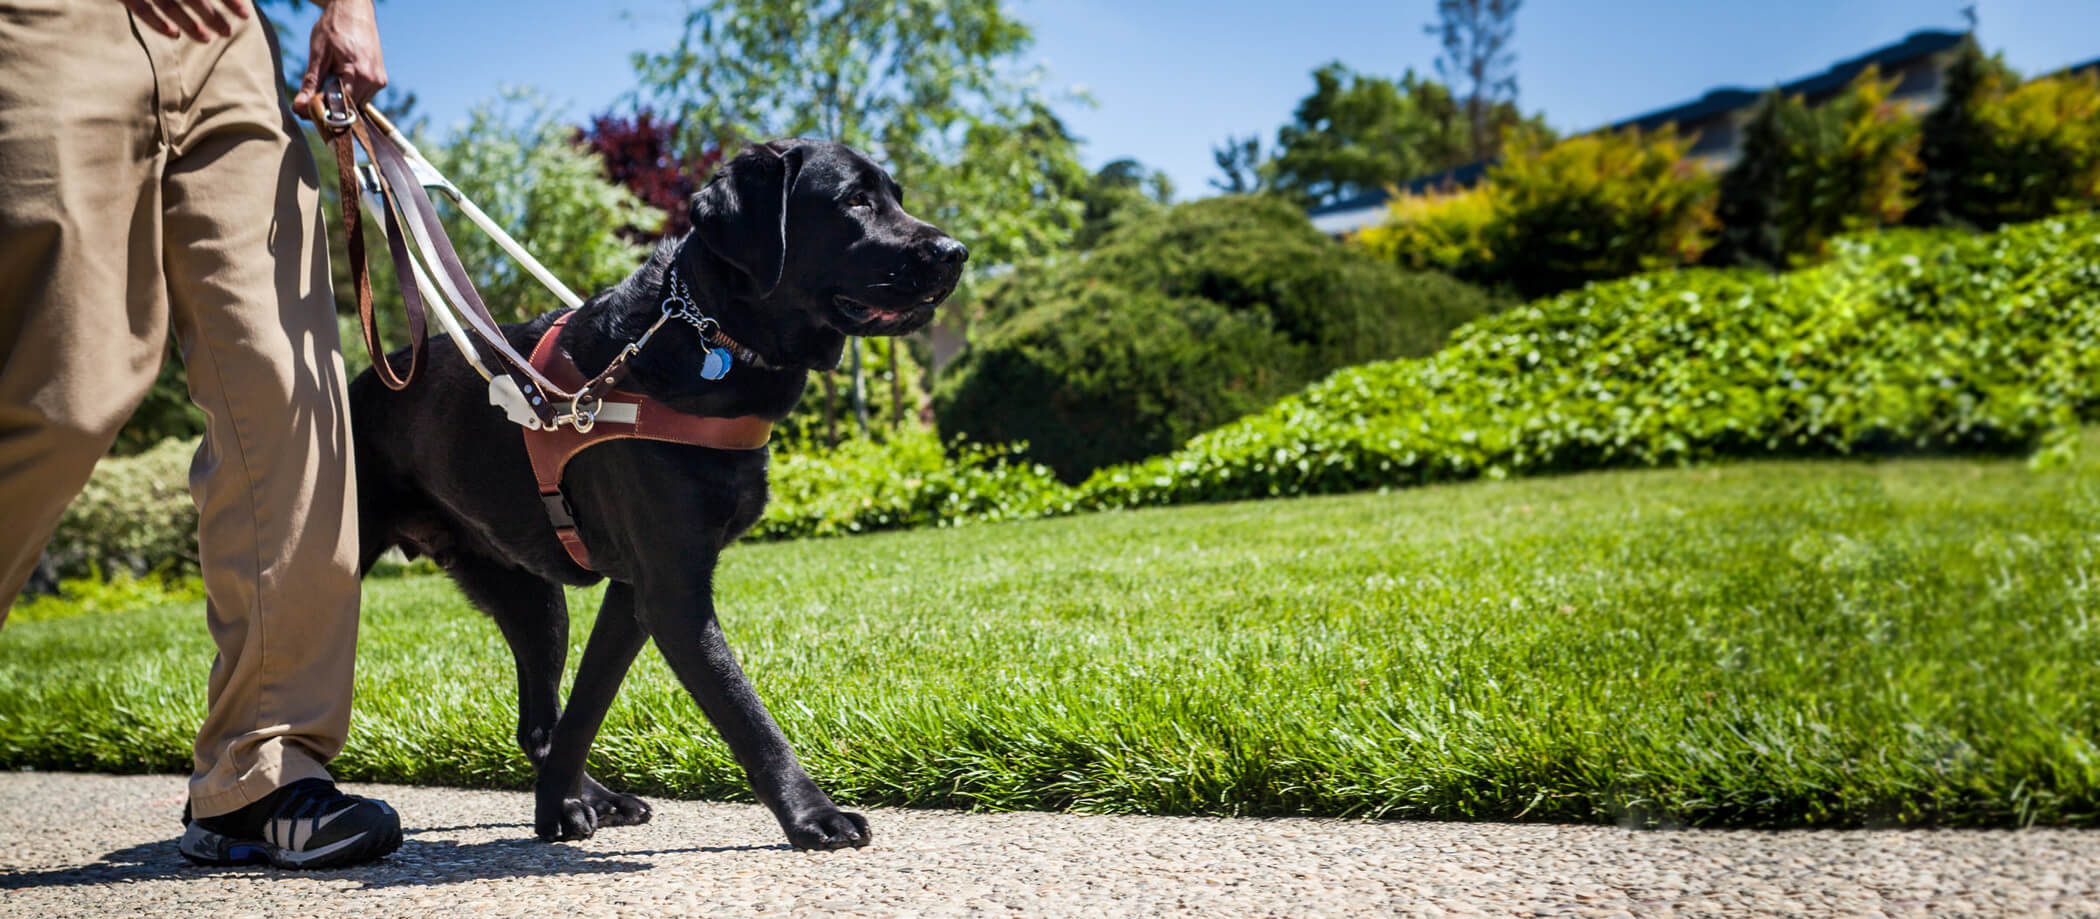 A black Lab guide dog leading a person on a sidewalk (only the person's legs are shown).